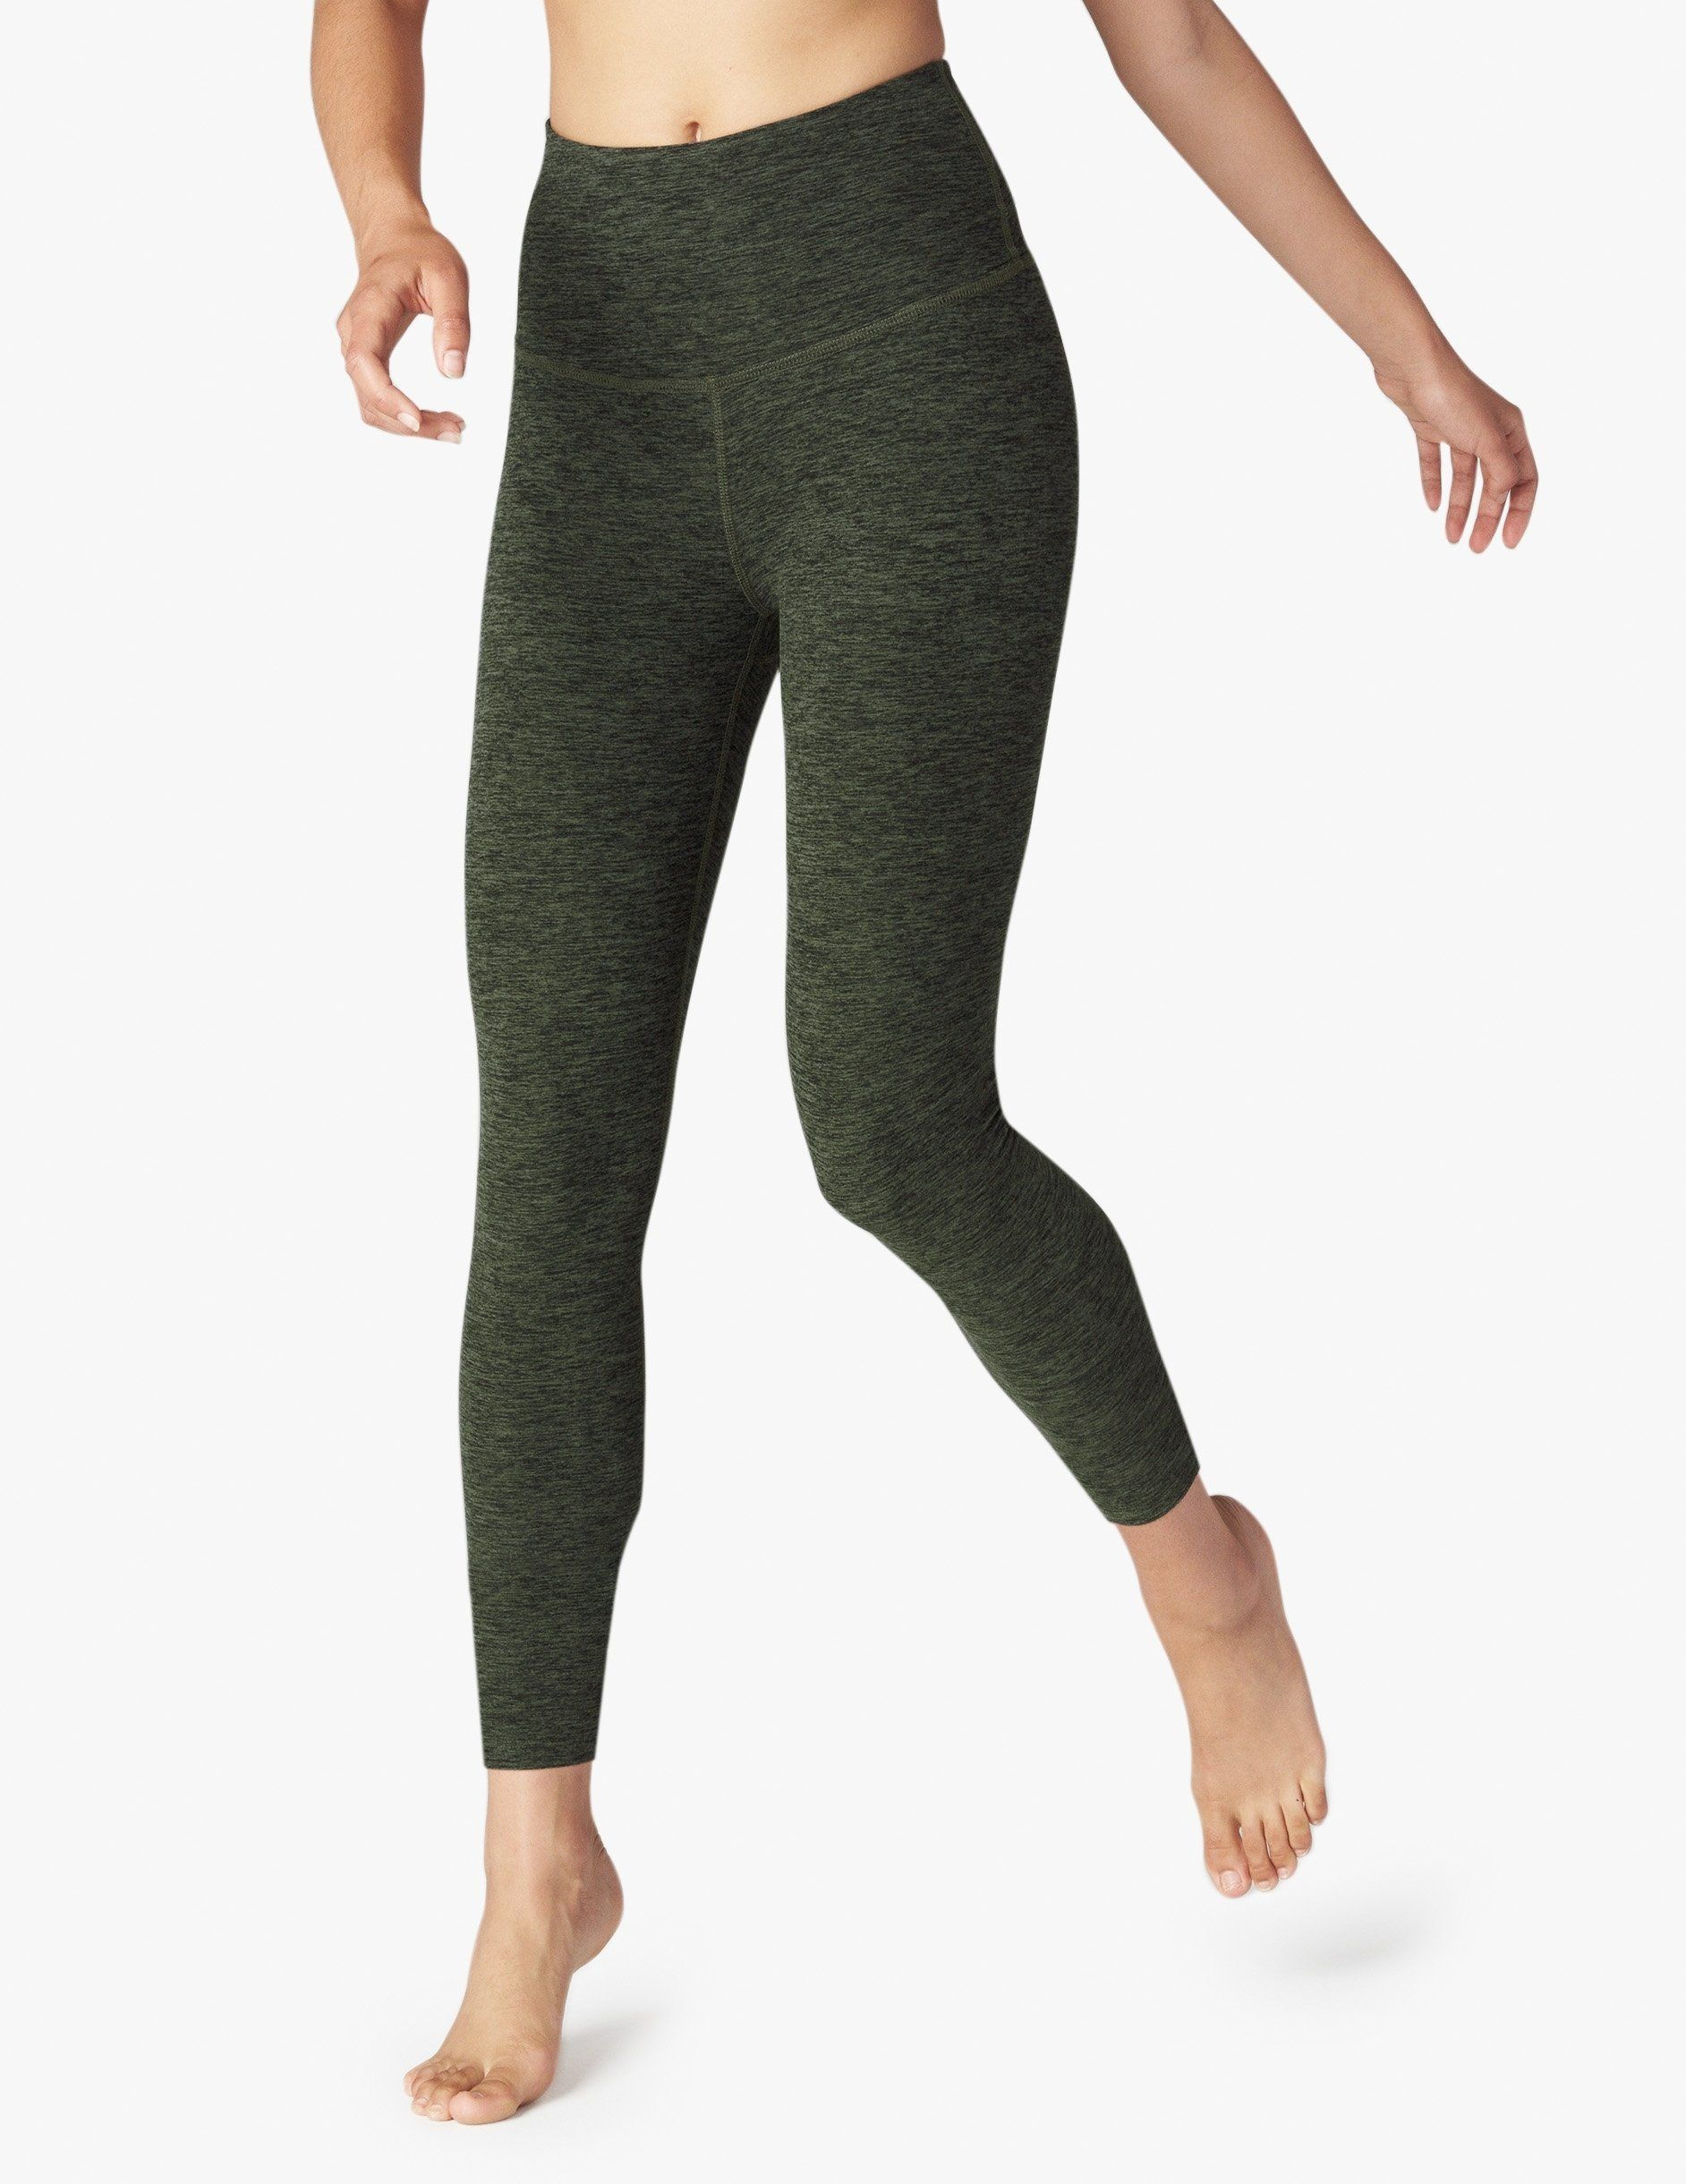 ee68c120c6242 Spacedye Caught In The Midi High Waisted Legging - XS Black/Avitar Green